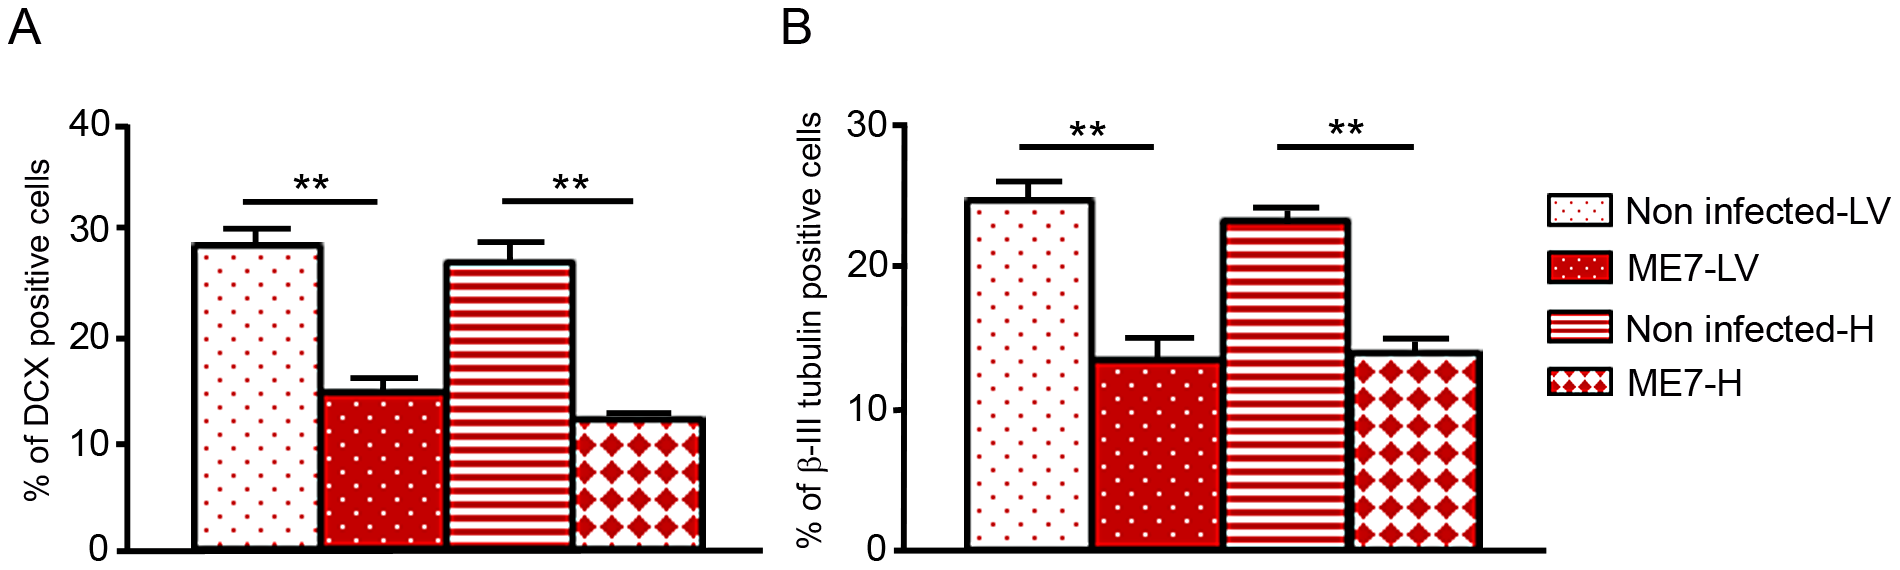 Prion infection and replication during differentiation impairs neural differentiation.